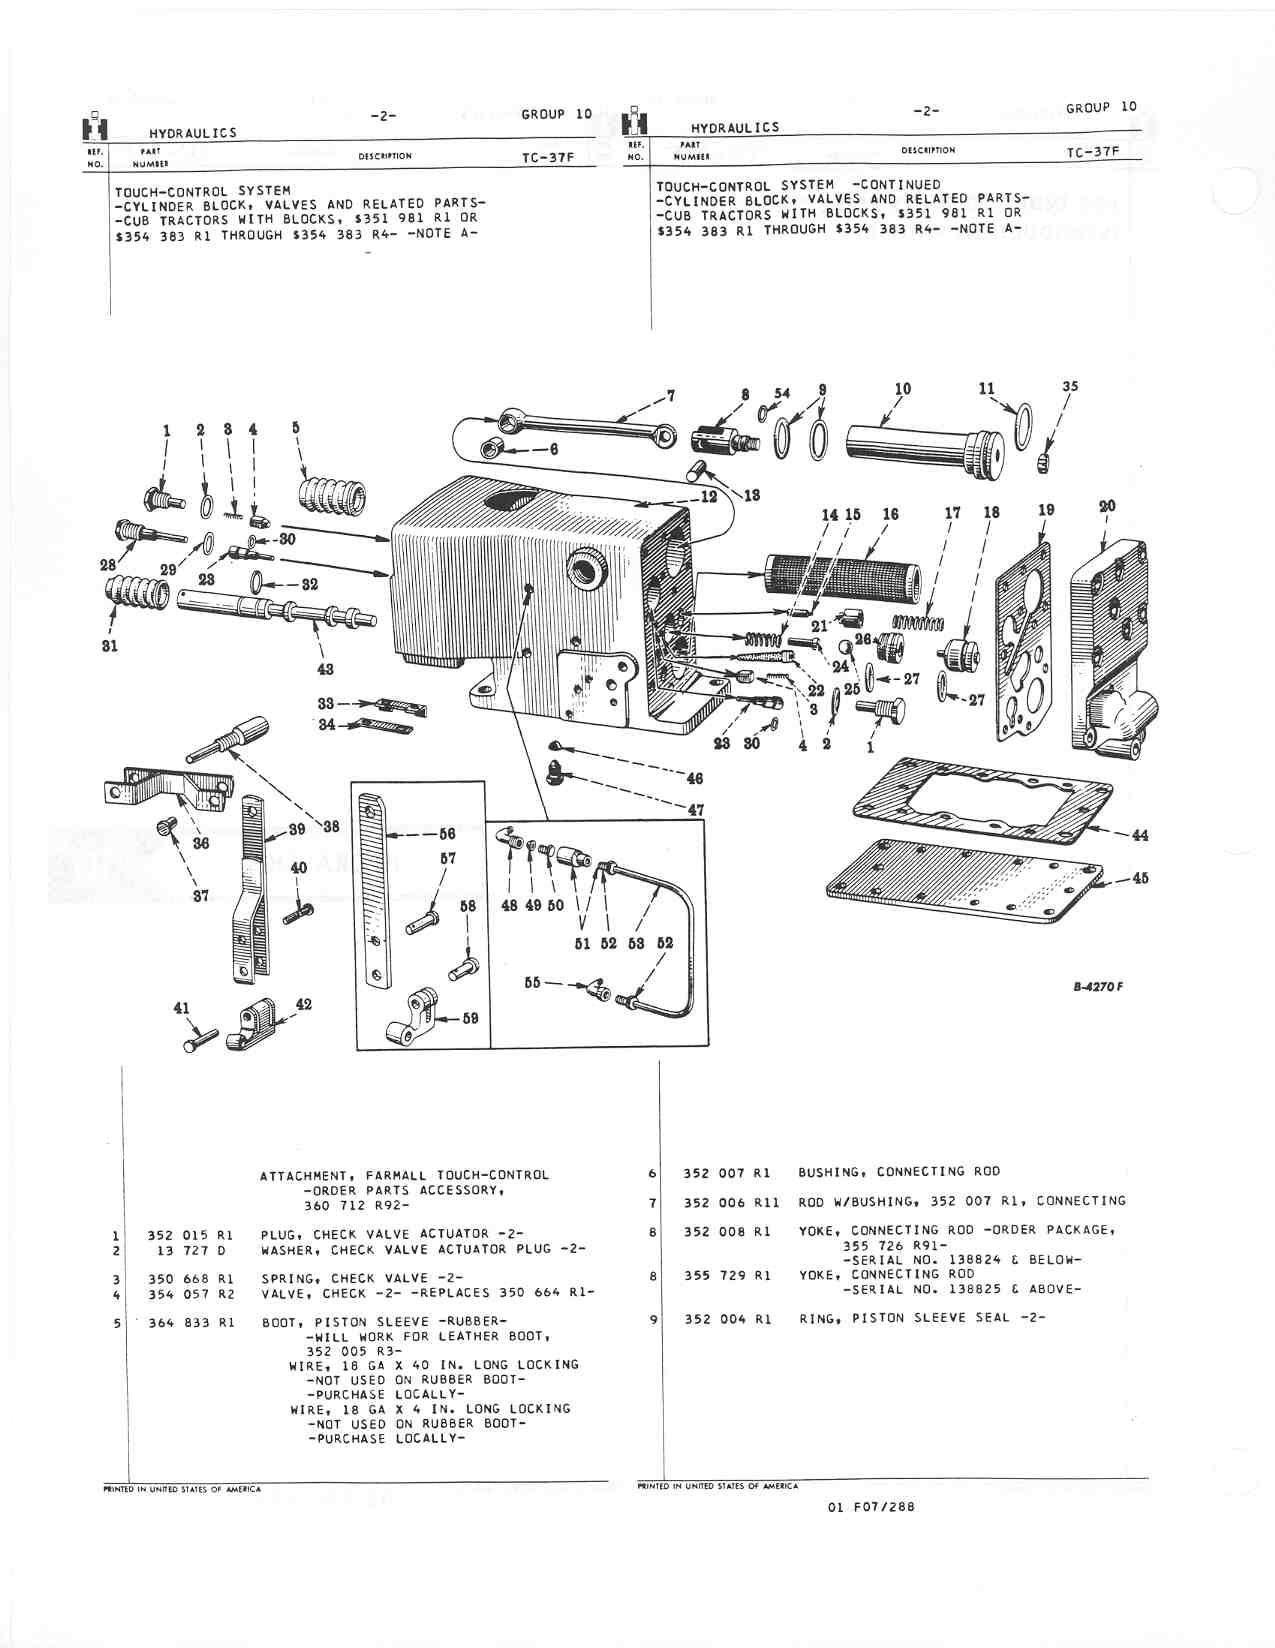 farmall c oil pump diagram wiring diagram library Chrysler 440 Oil Pump Diagram farmall c oil pump diagram